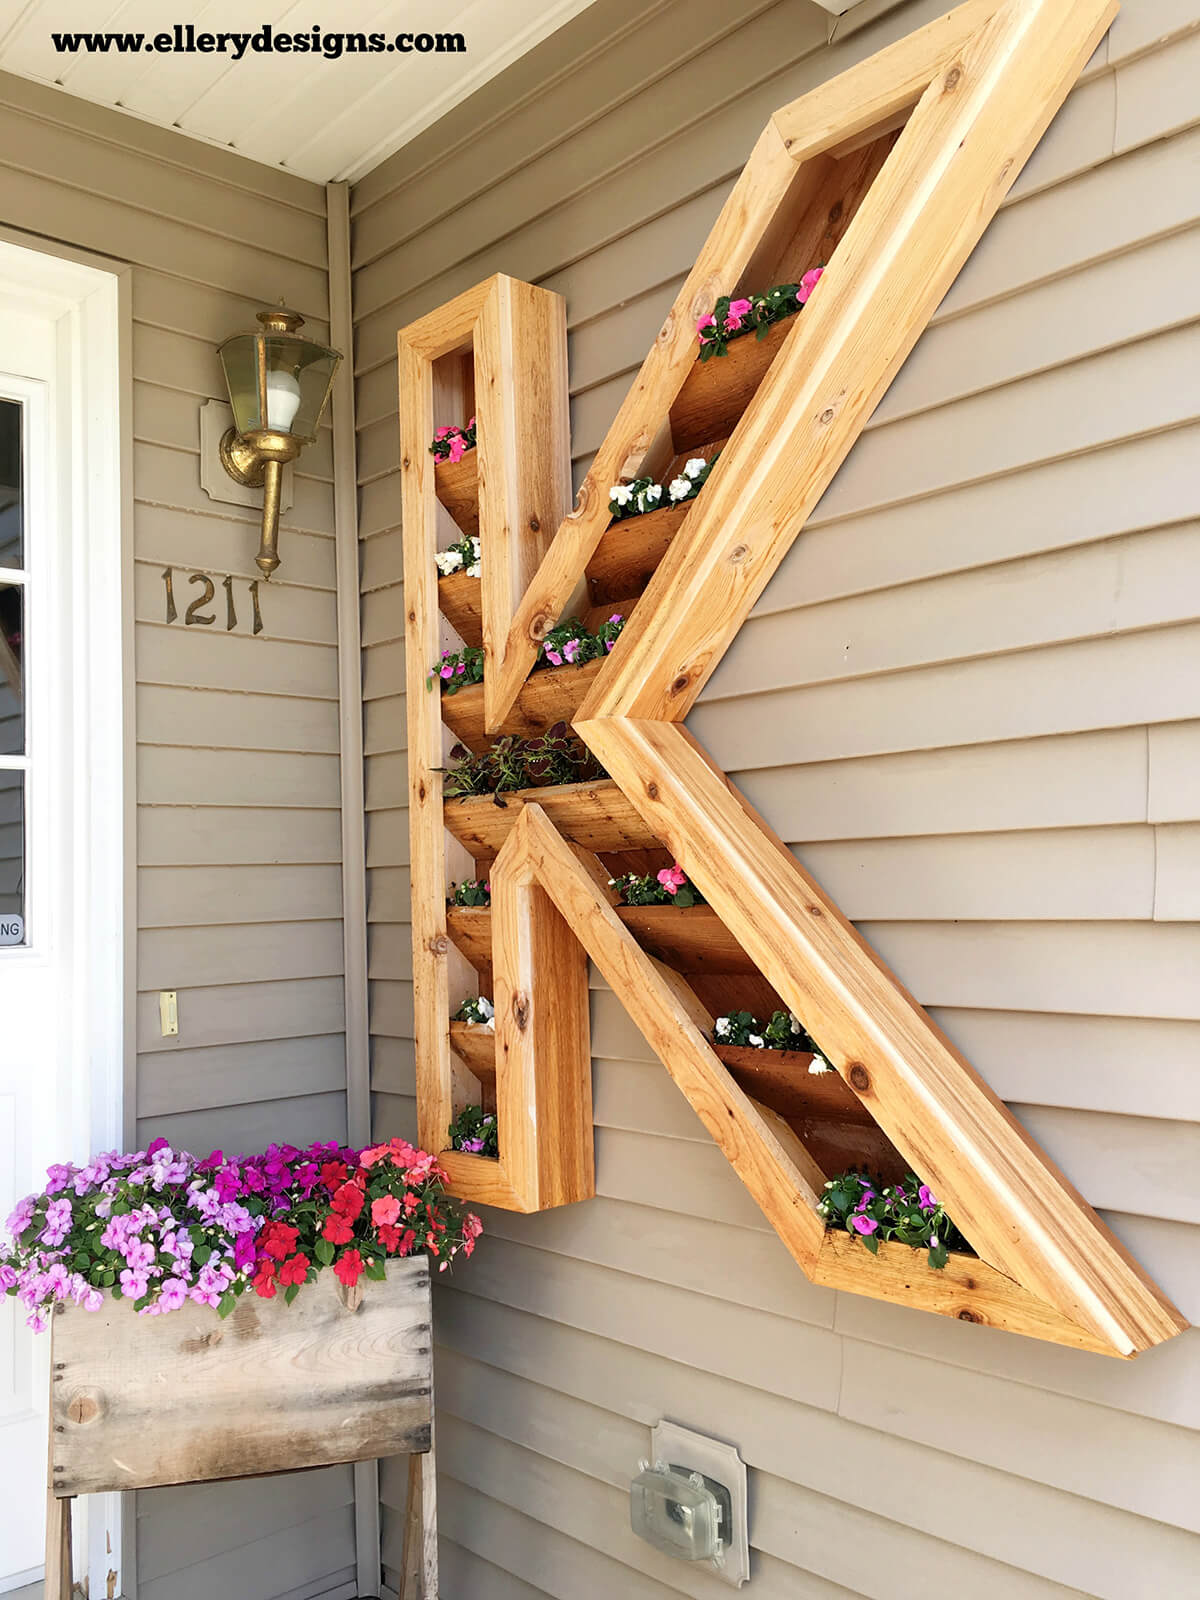 Diy Planter Box From Pallets 32 Best Diy Pallet And Wood Planter Box Ideas And Designs